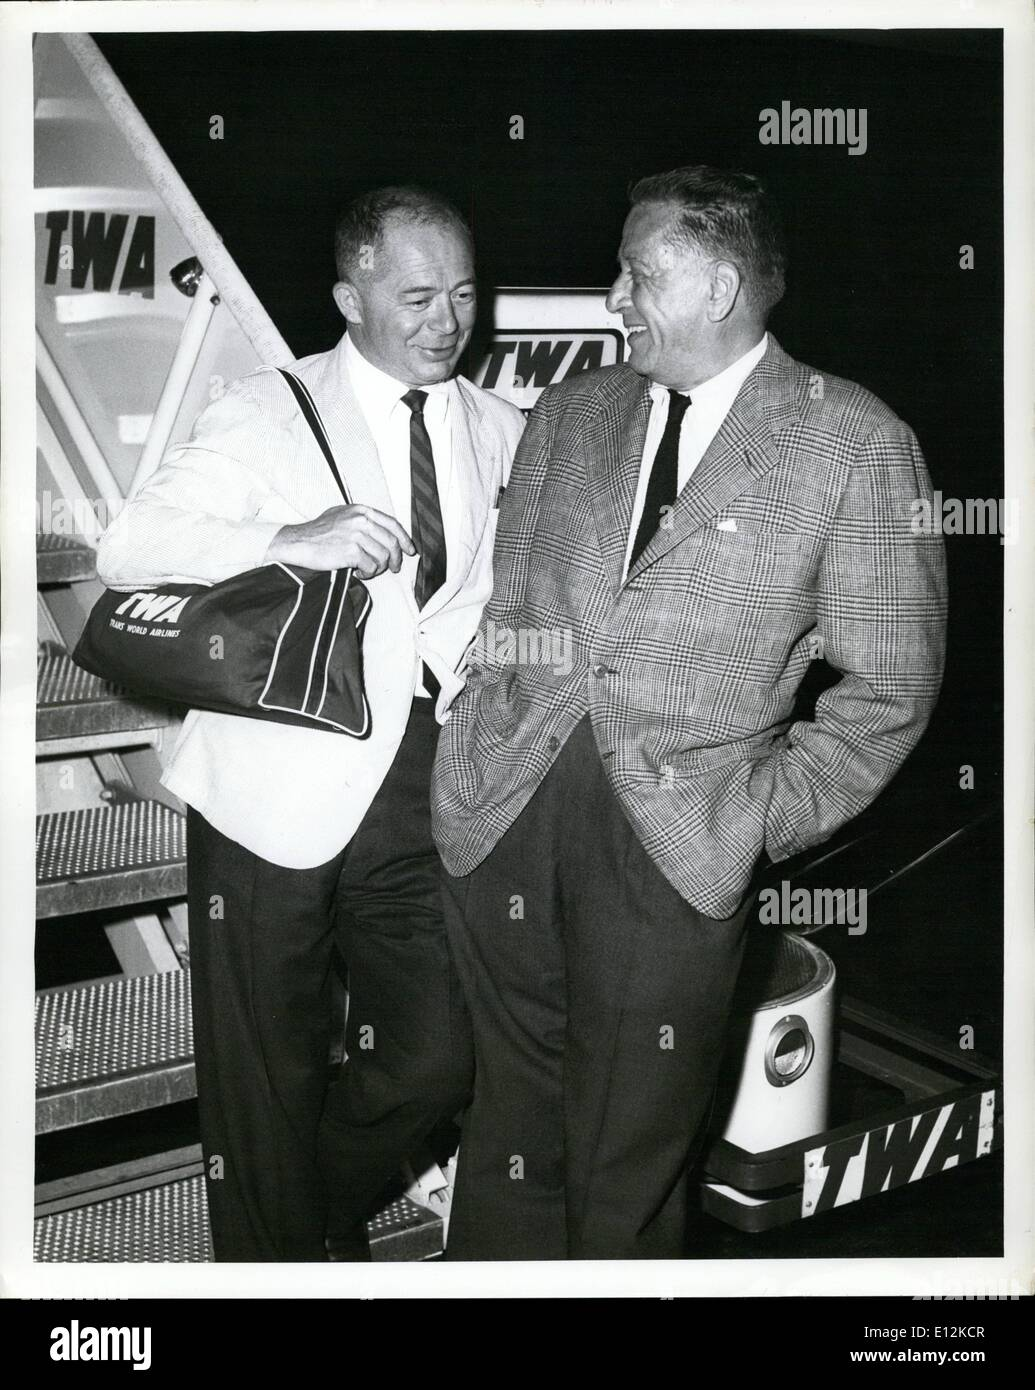 Feb. 24, 2012 - Idlewild Airport, N.Y., -- Leland Hayward, right and Billy wilder, pause on Completion of the first Stock Photo